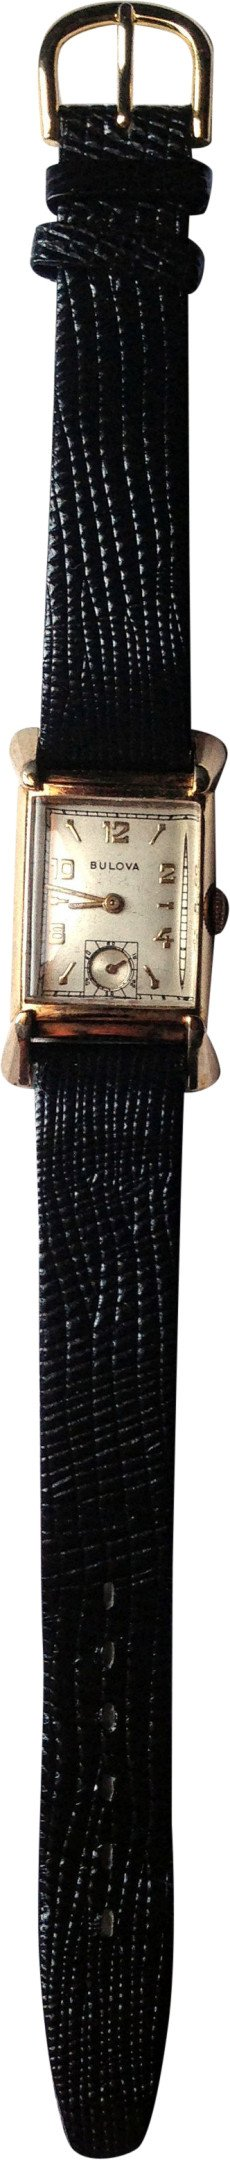 Swiss Watch 10k, 1940s